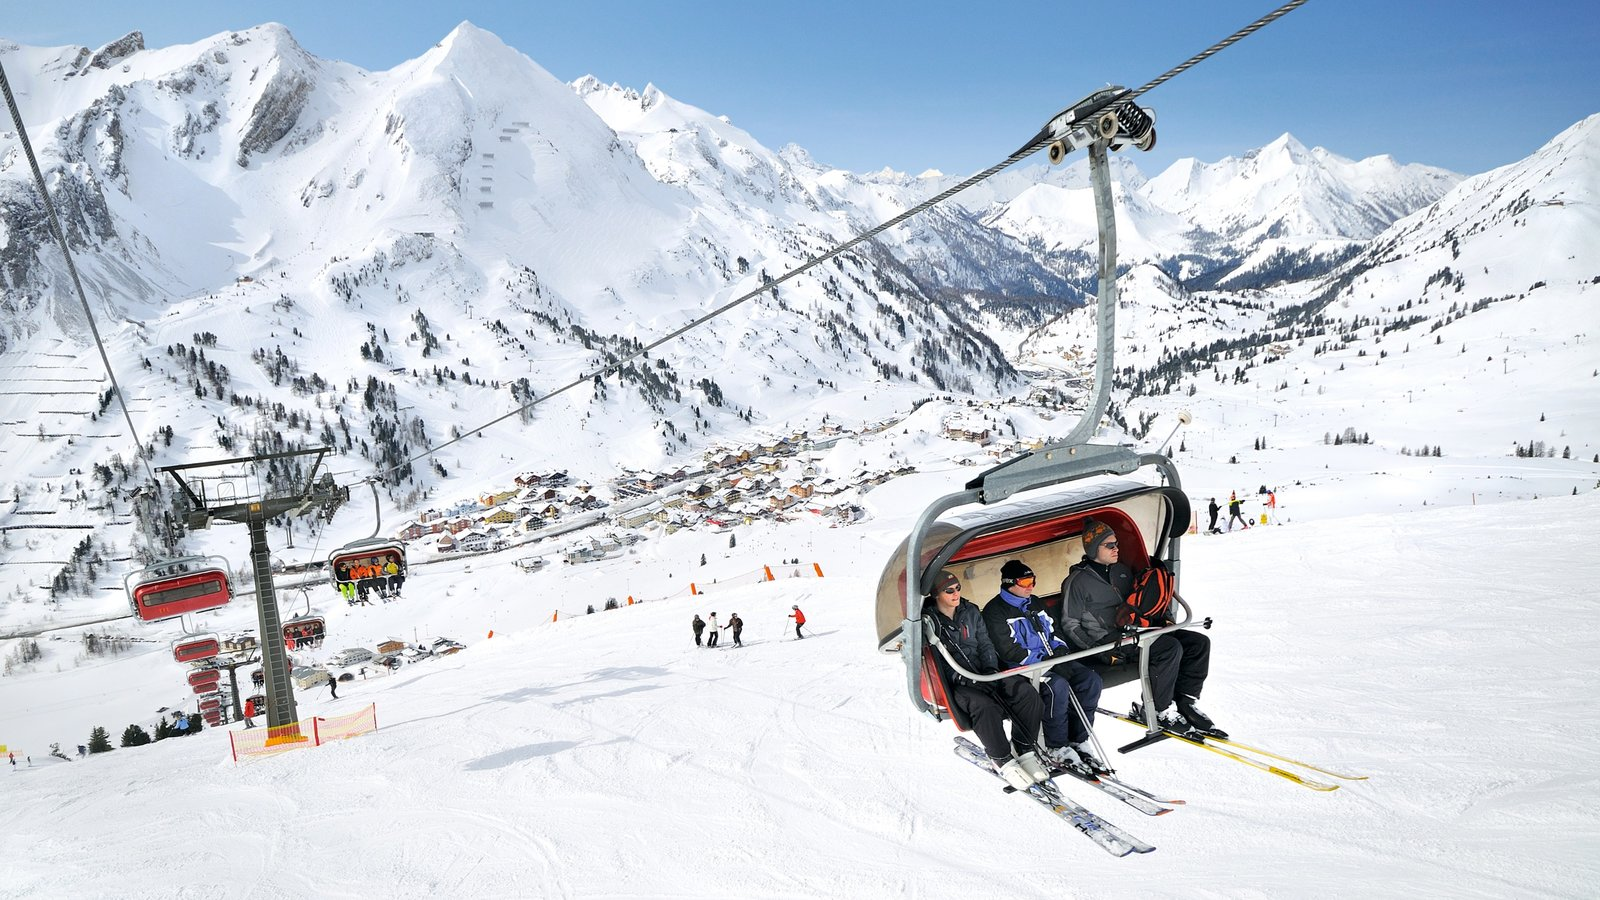 Obertauern showing a gondola, snow skiing and mountains